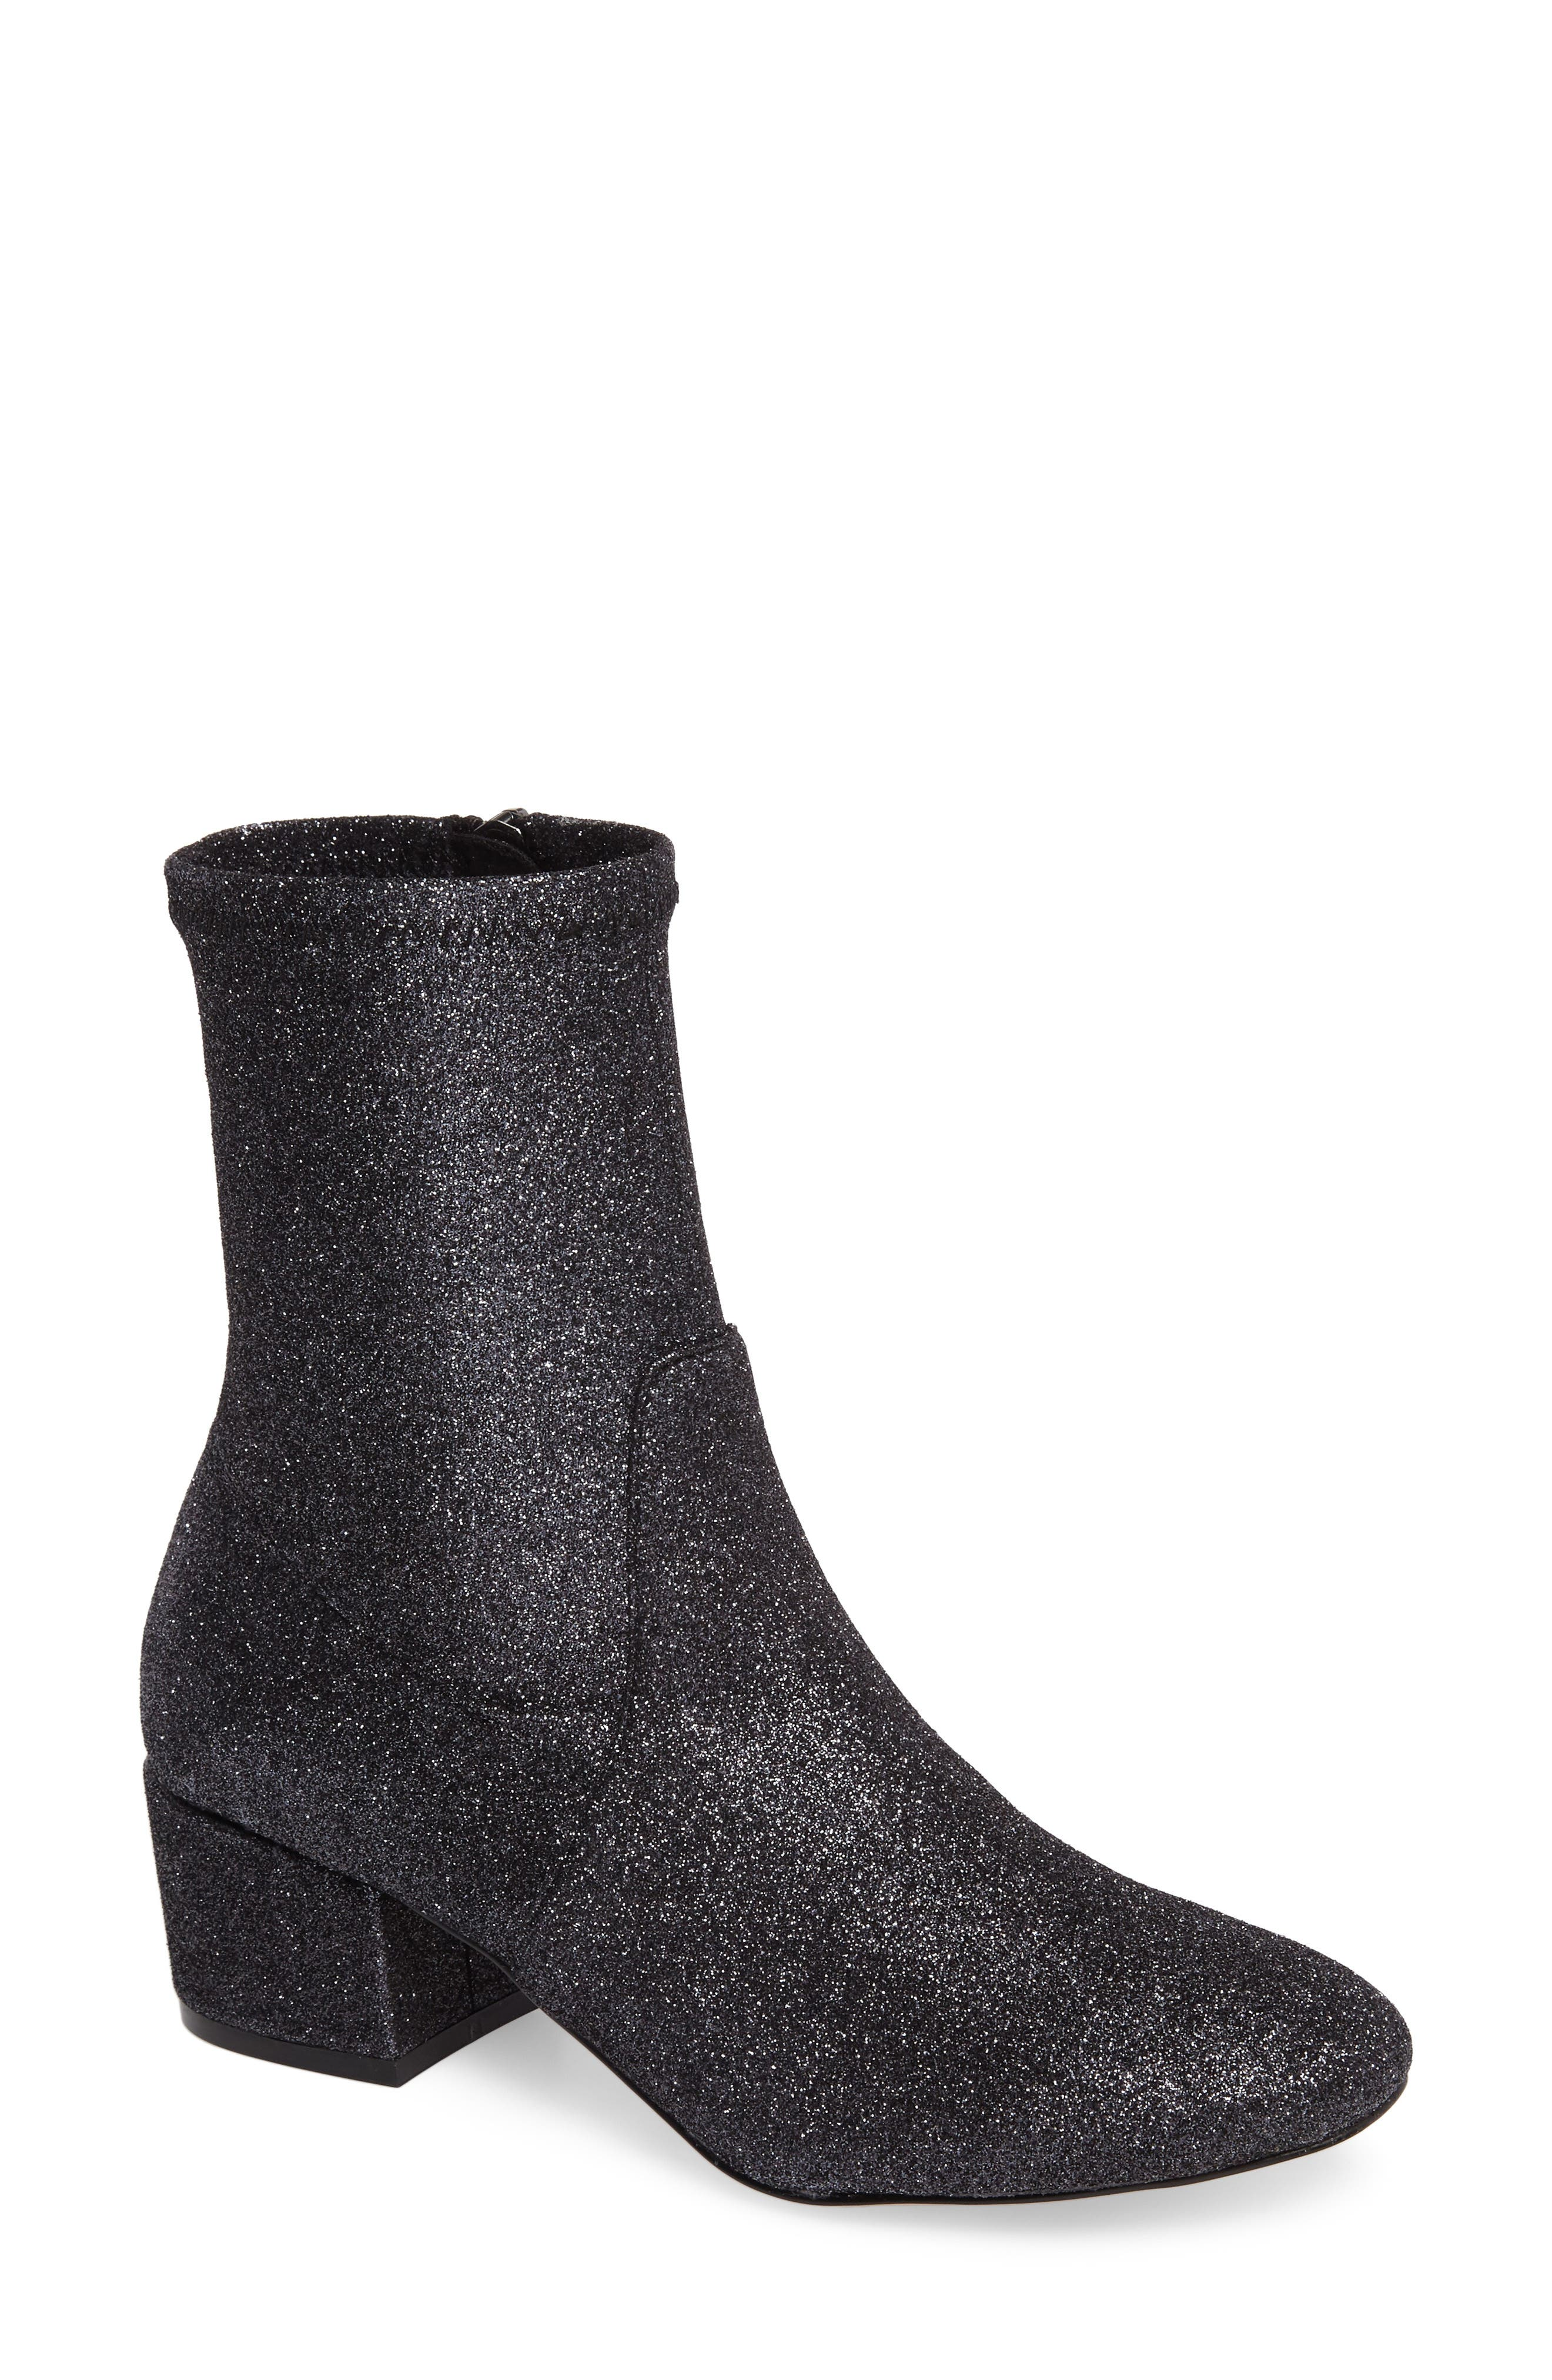 Gemma Bootie,                         Main,                         color, Gunmetal Glitter